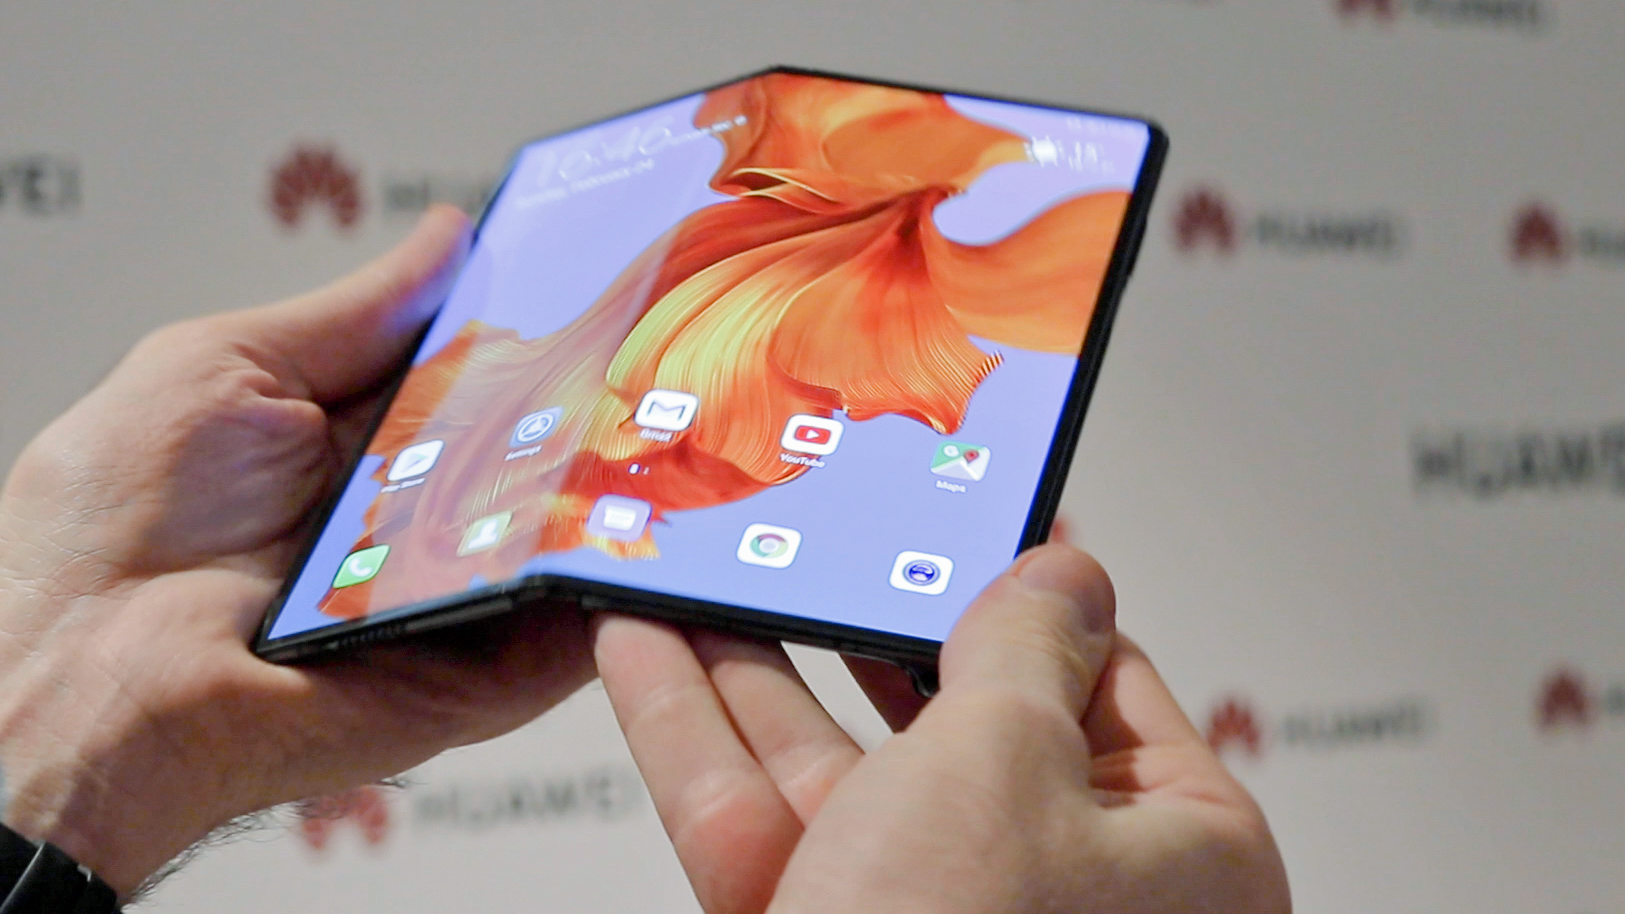 Folding X Mate smartphone from Huawei: more than a thin competitor to the Galaxy Fold